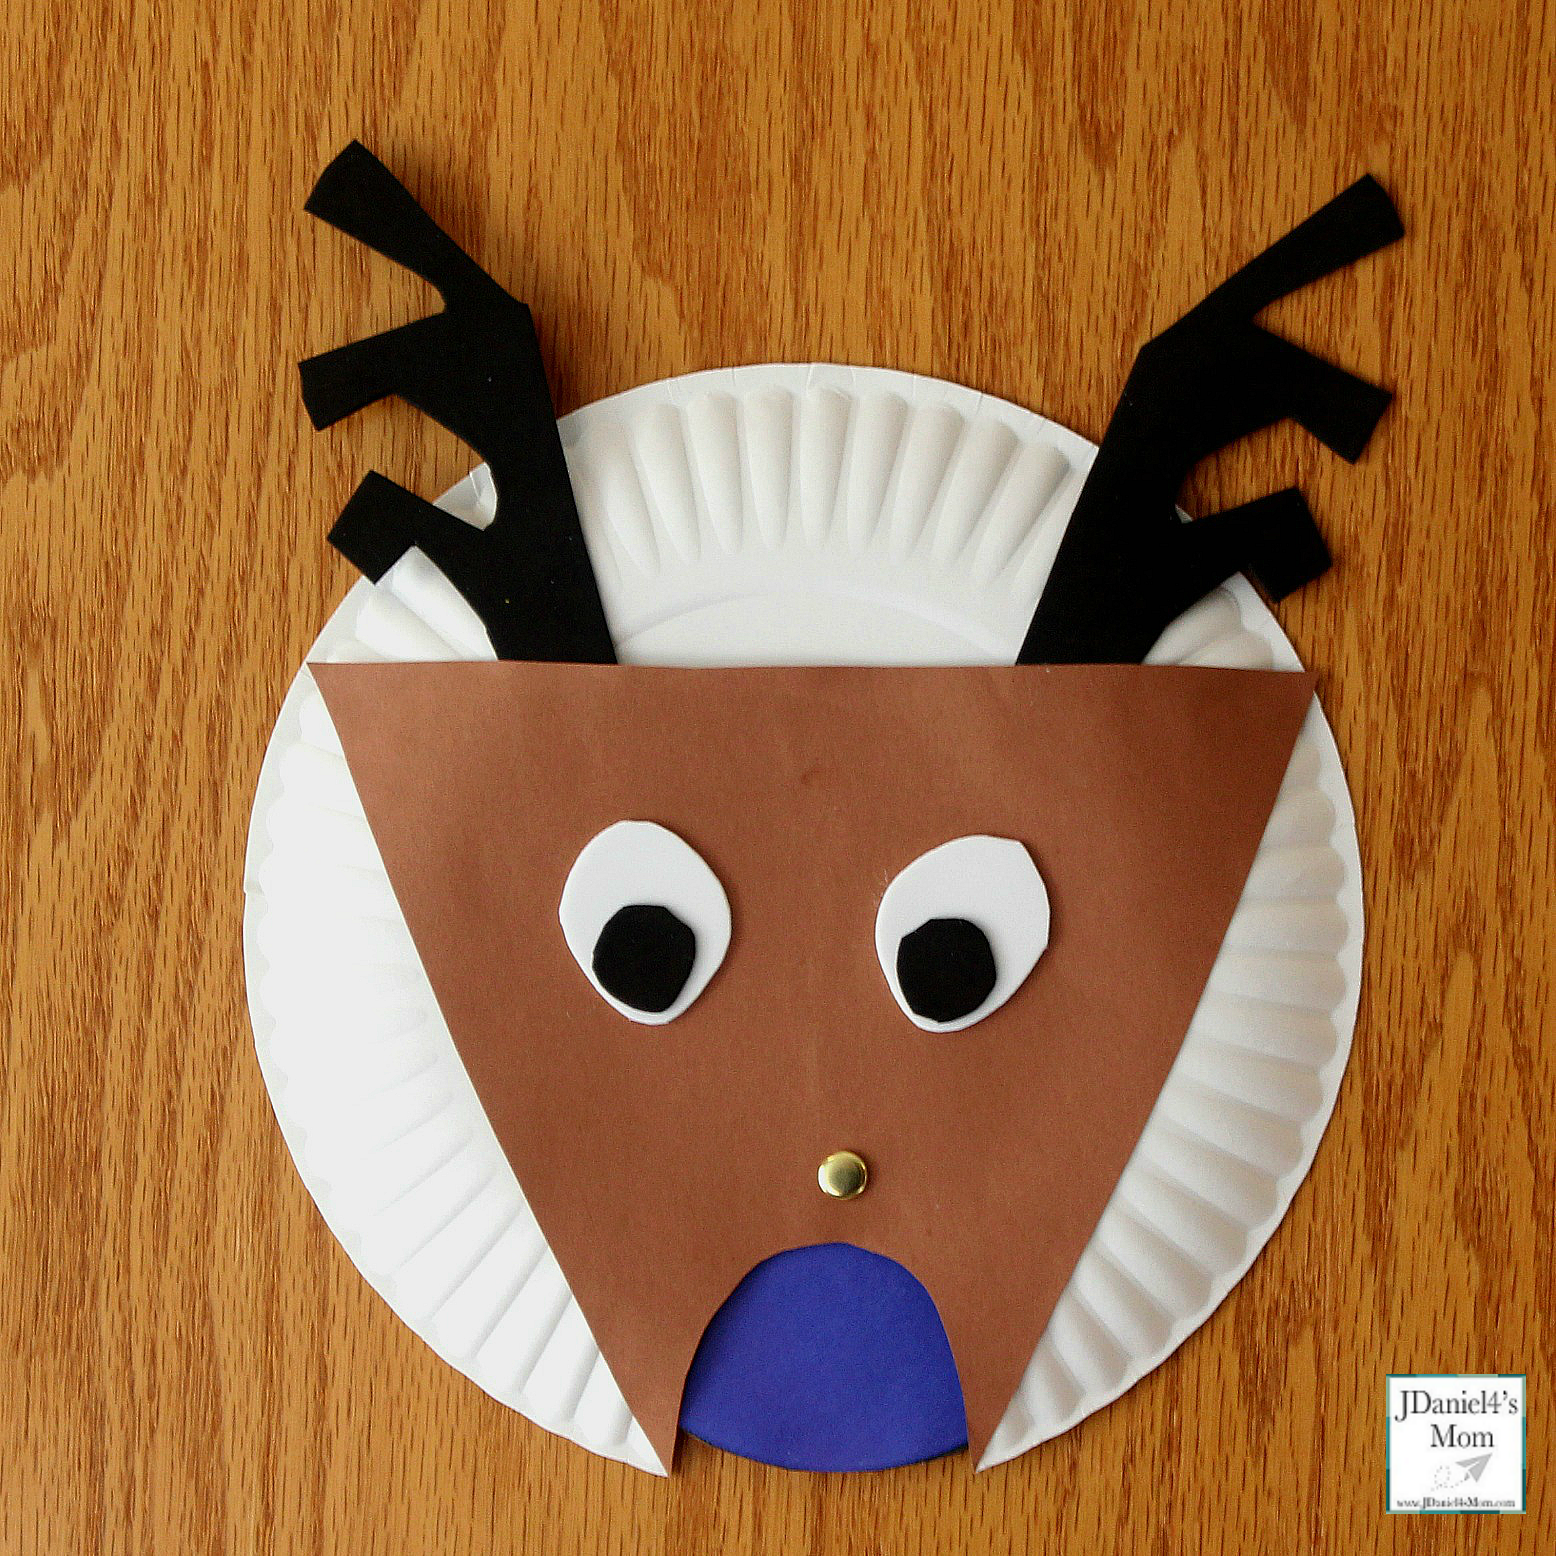 Changing the Color of the Reindeer's Nose Color Activity - Homemade Reindeer with a Blue Nose